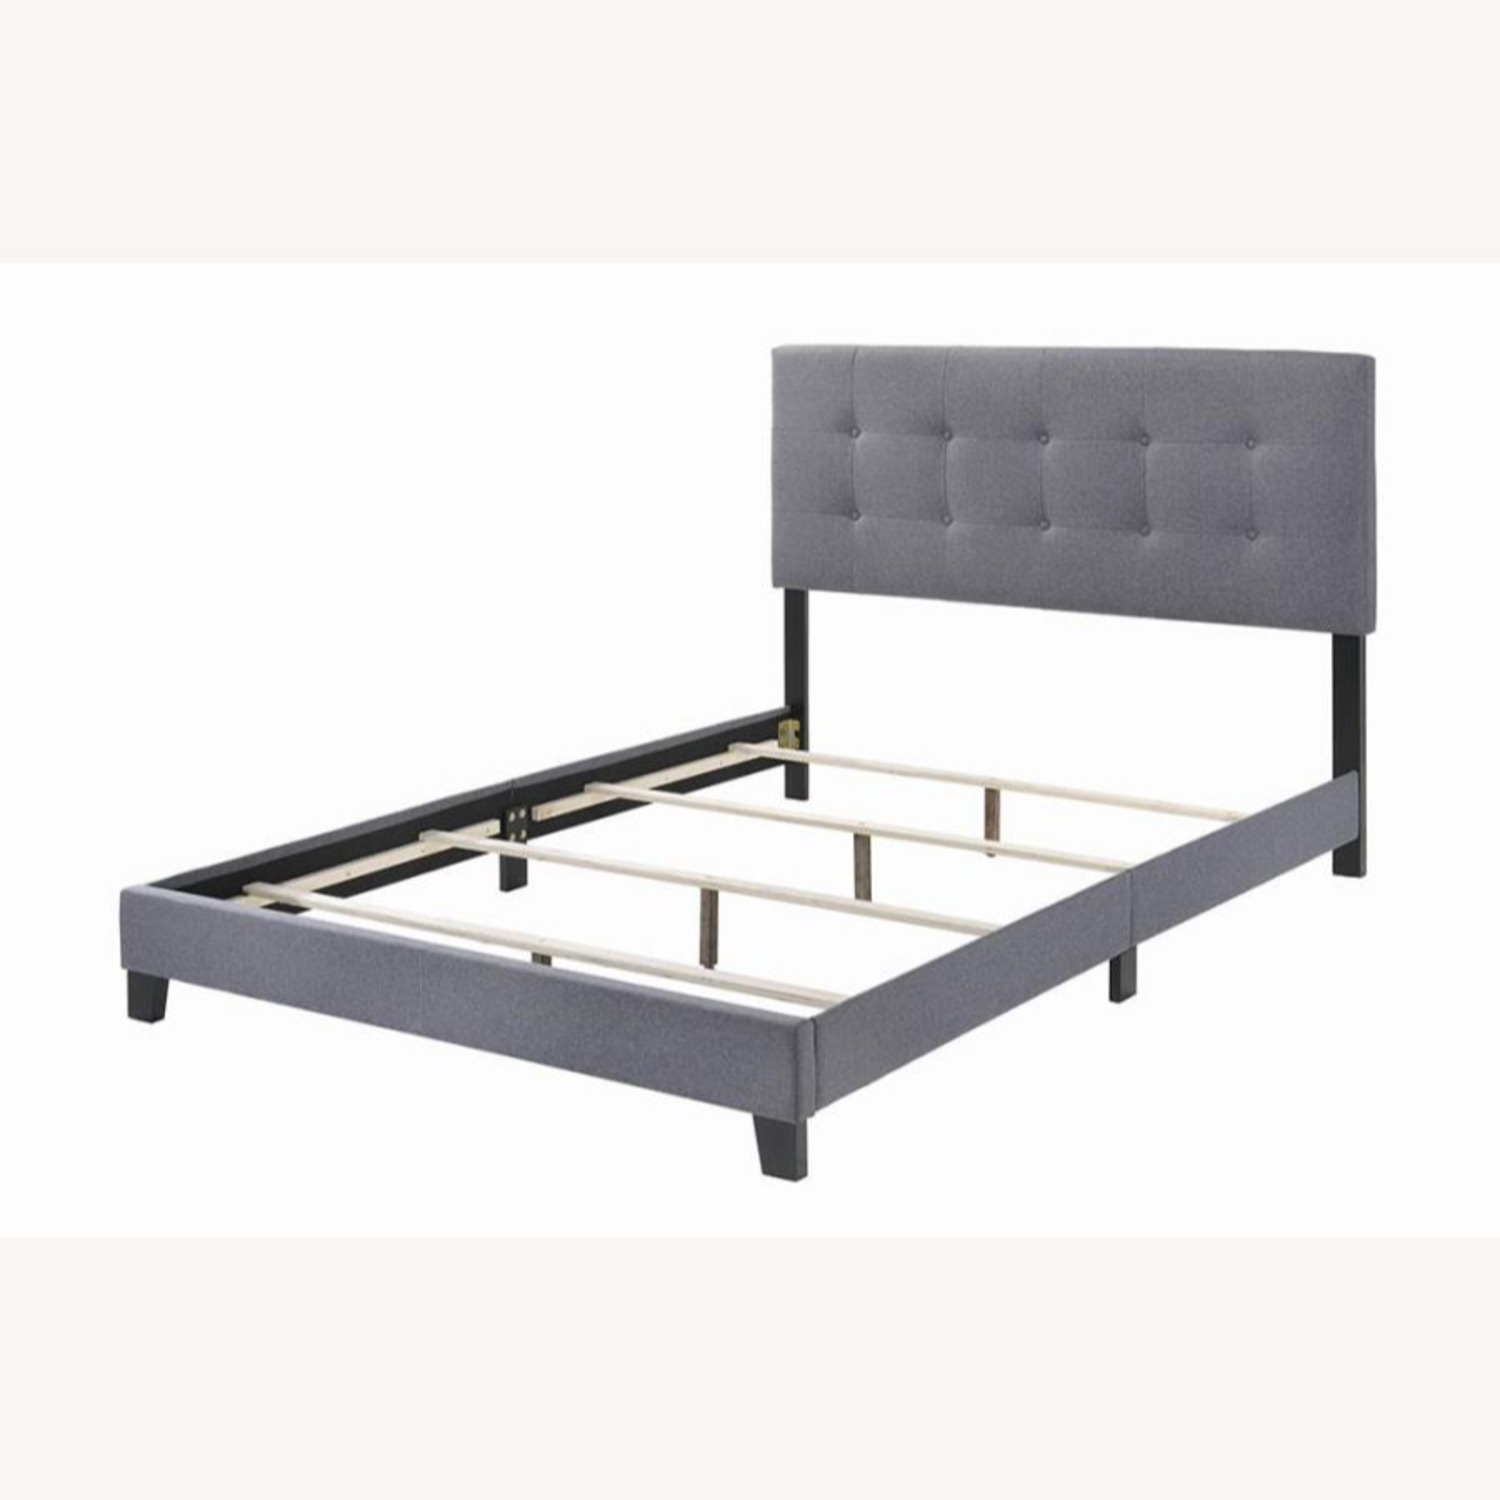 King Bed In Grey Fabric W/ Modern Button Tufting - image-1